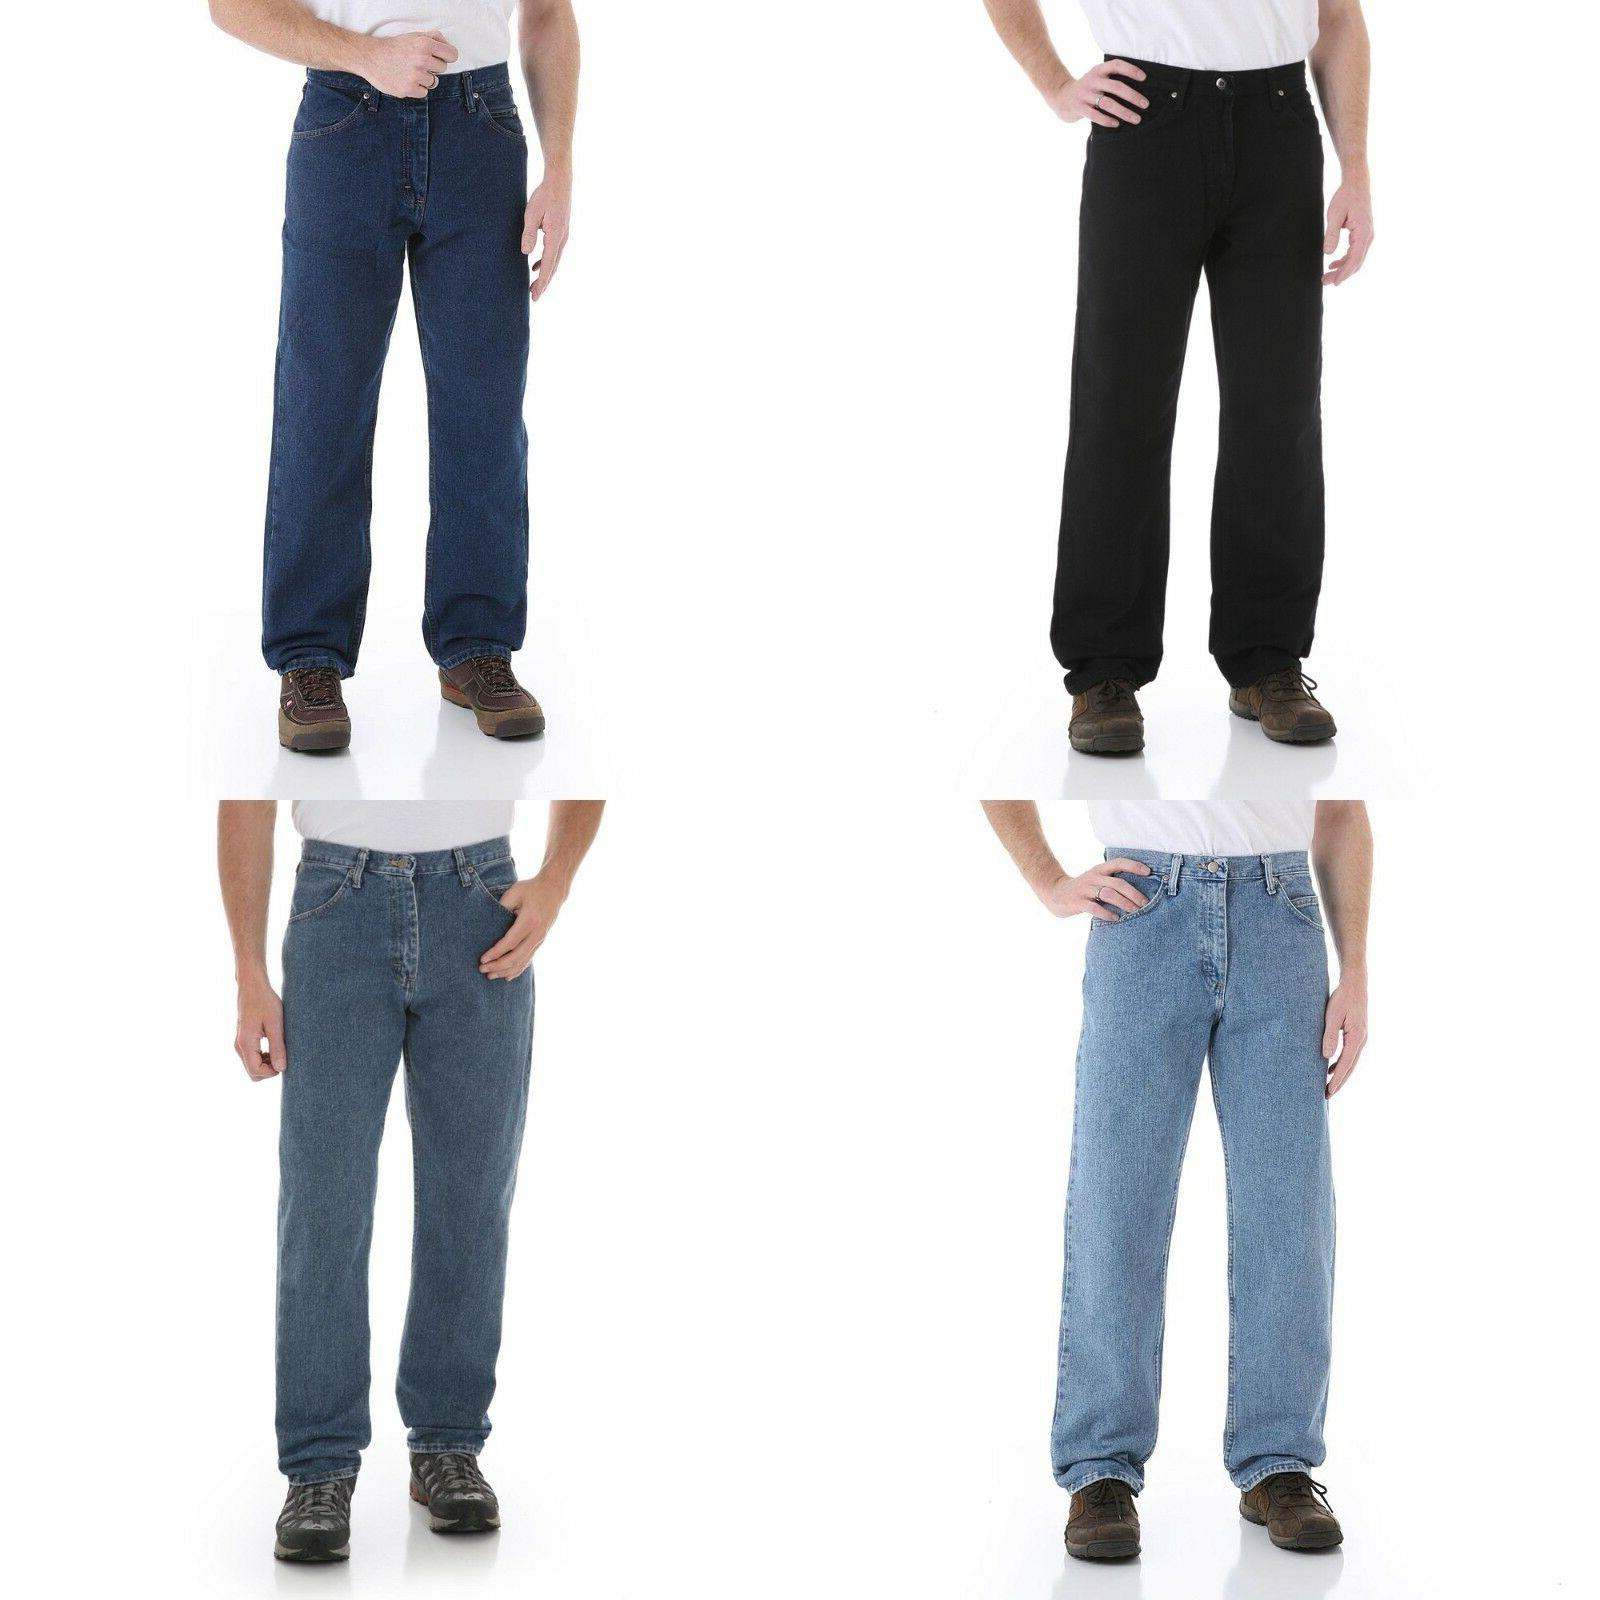 New Wrangler Jeans Big and Tall Colors Available